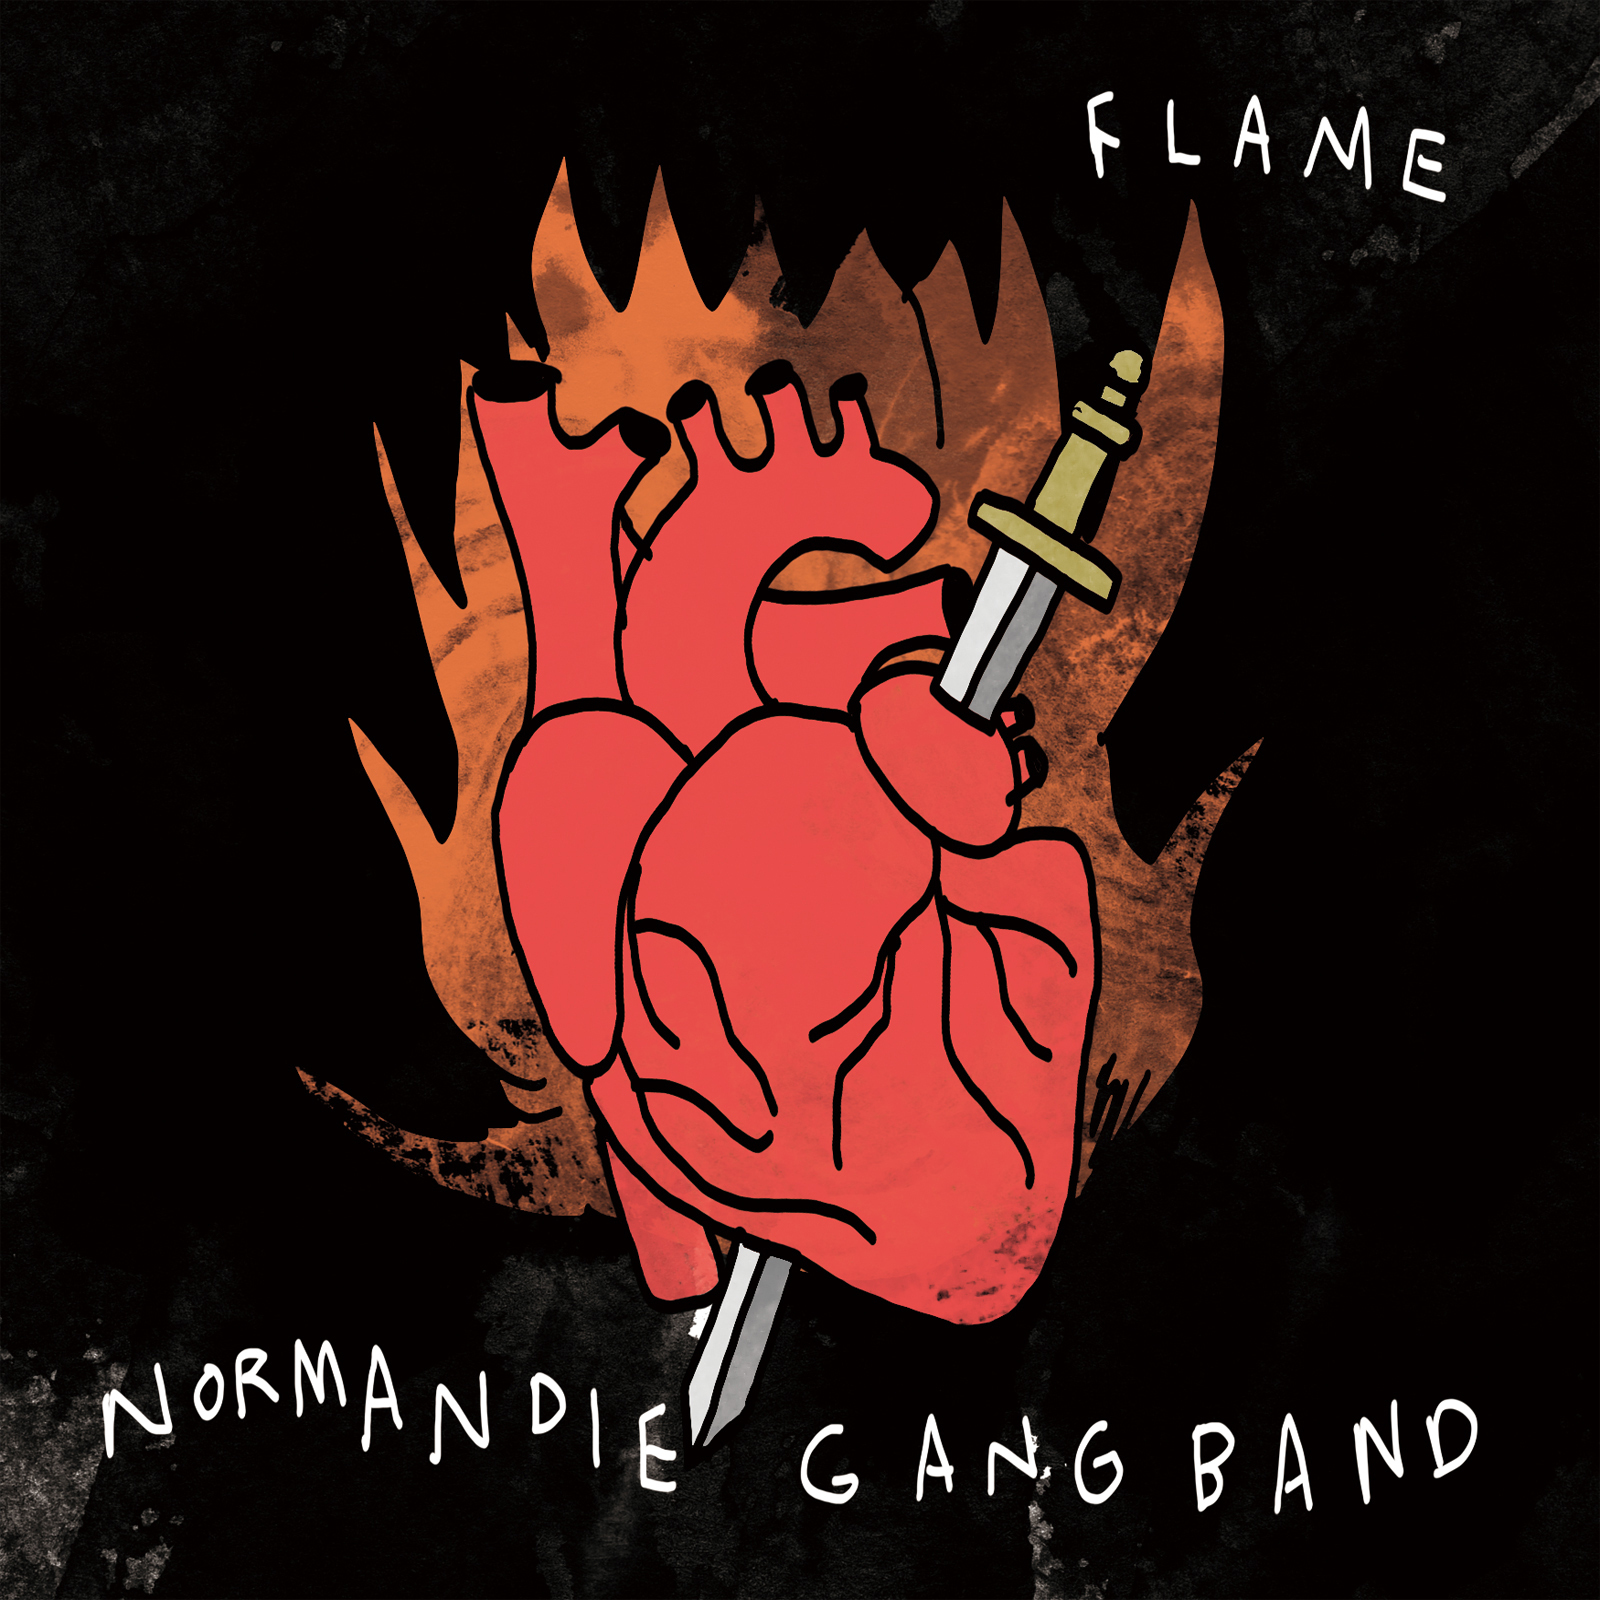 [CD] FLAME / NORMANDIE GANG BAND 2,160円(税込)